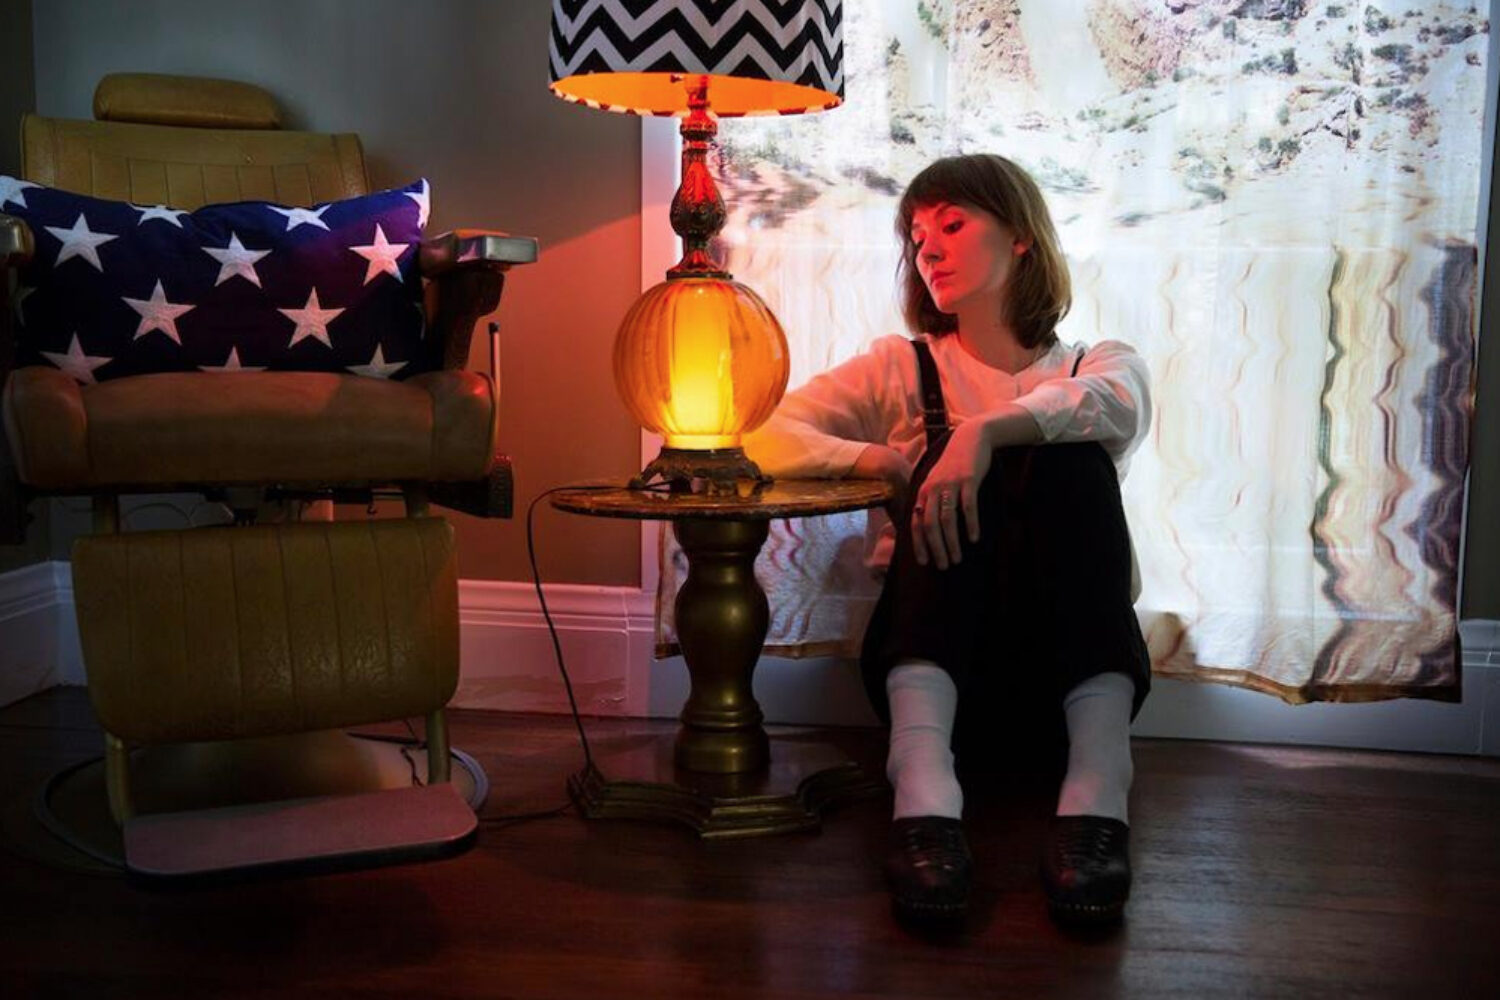 Cate Le Bon, Gruff Rhys among 2014 Welsh Music Prize nominees